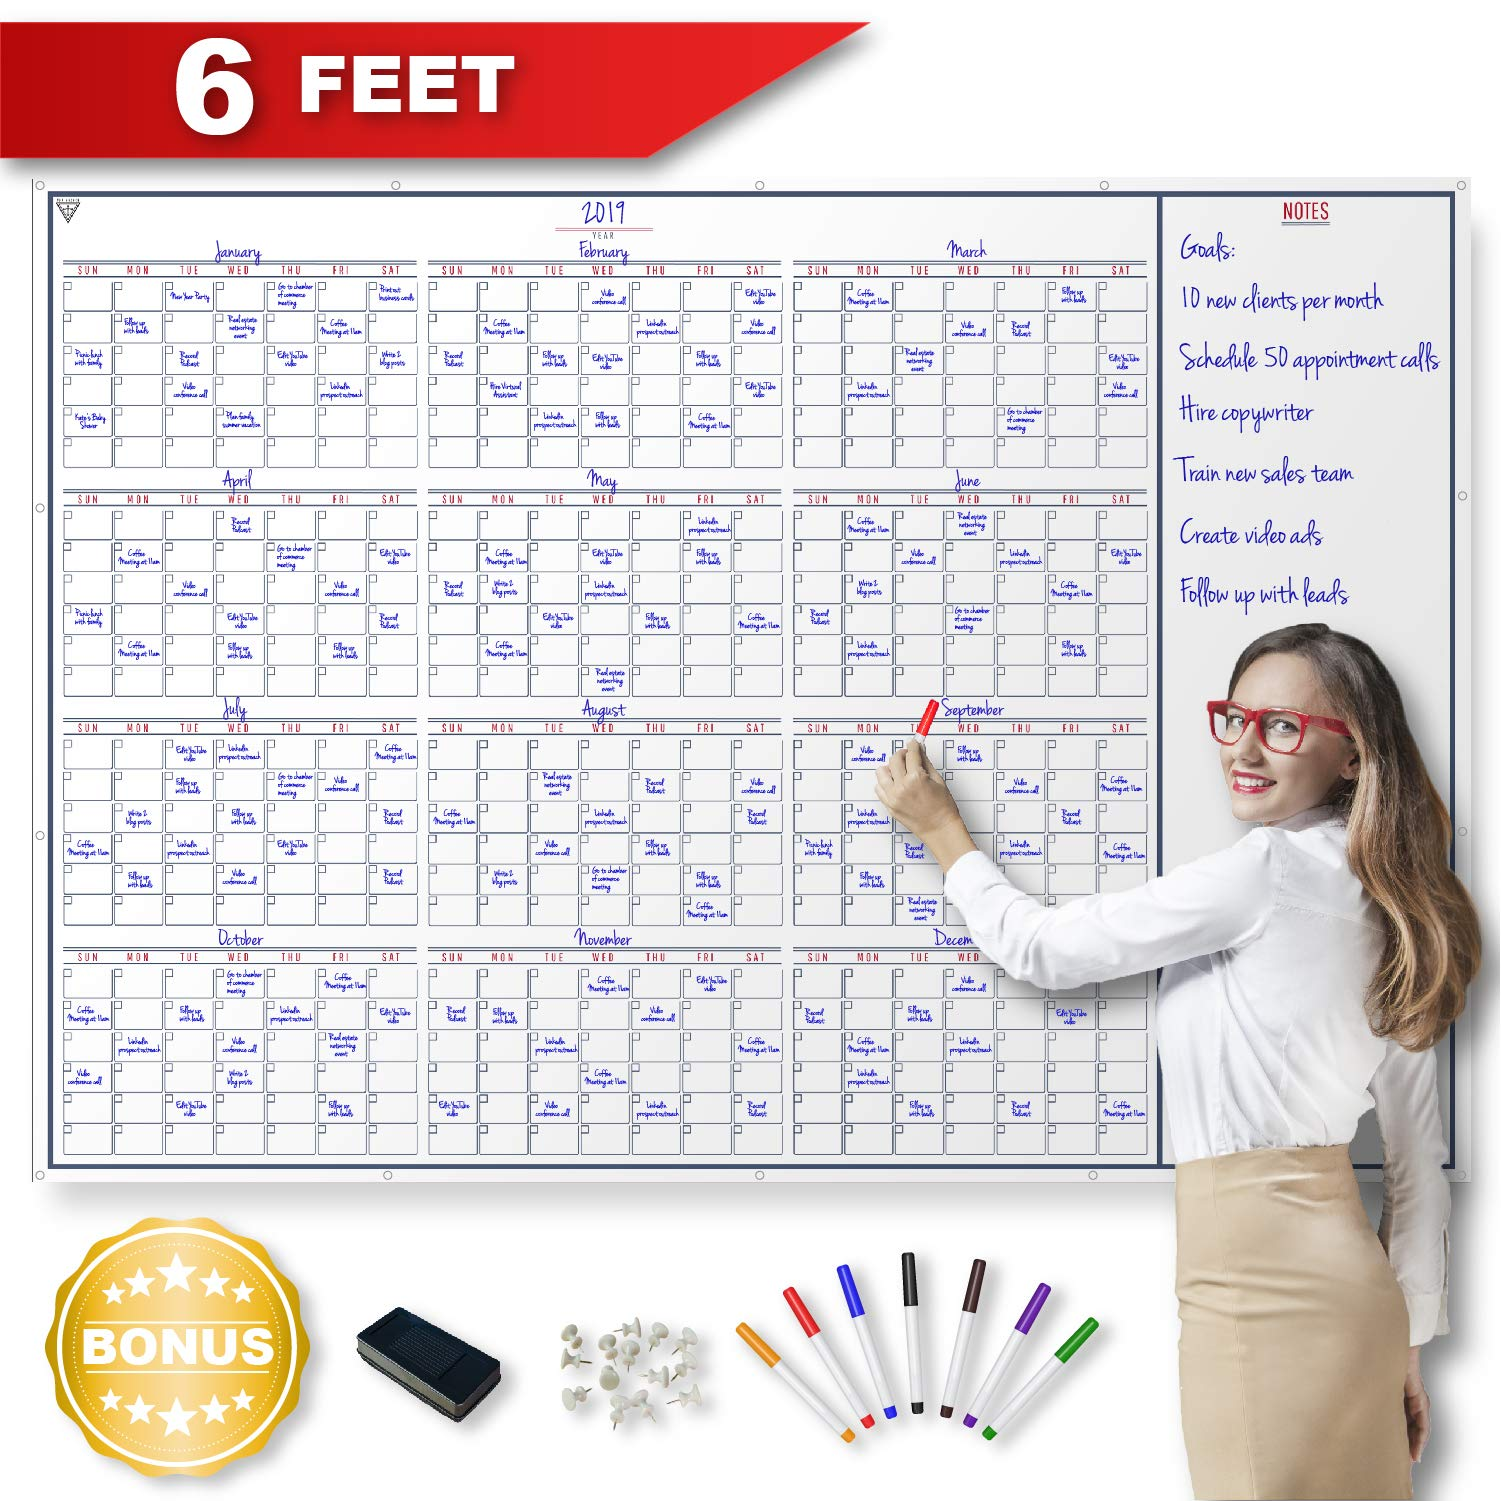 Large Dry Erase Wall Calendar - Whiteboard Project Yearly Calendar with Large Date Boxes and Reusable PET Lamination for Office, Home or School with 7 Fine Point Dry Erase Markers, Eraser and 14 Pushp by Top Archer